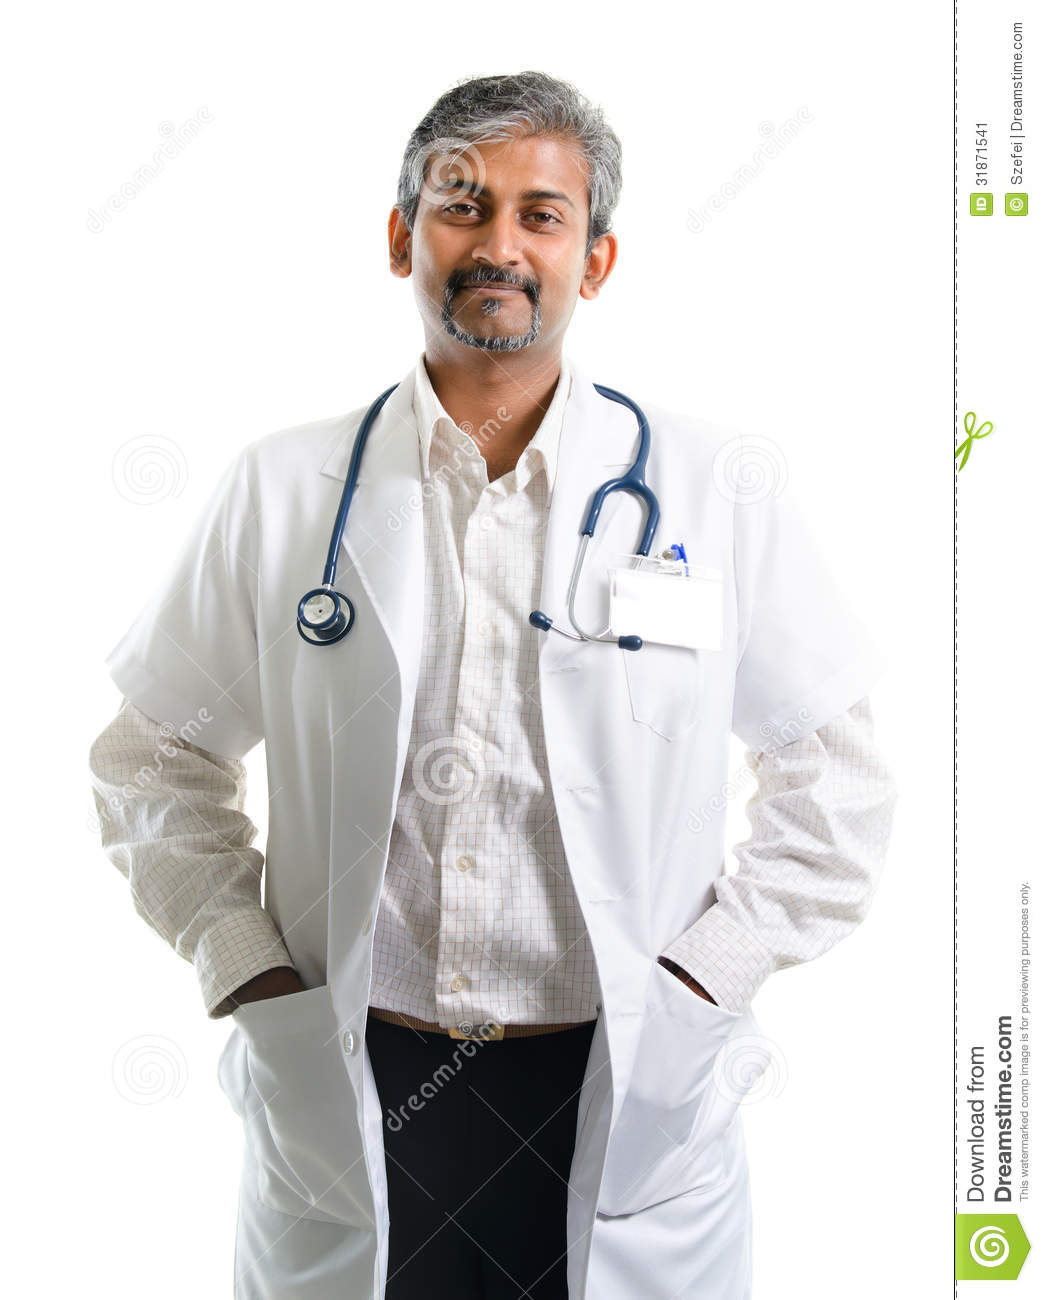 Indian doctor. Mature Indian male medical doctor standing isolated on white  background. Handsome Indian model portrait.